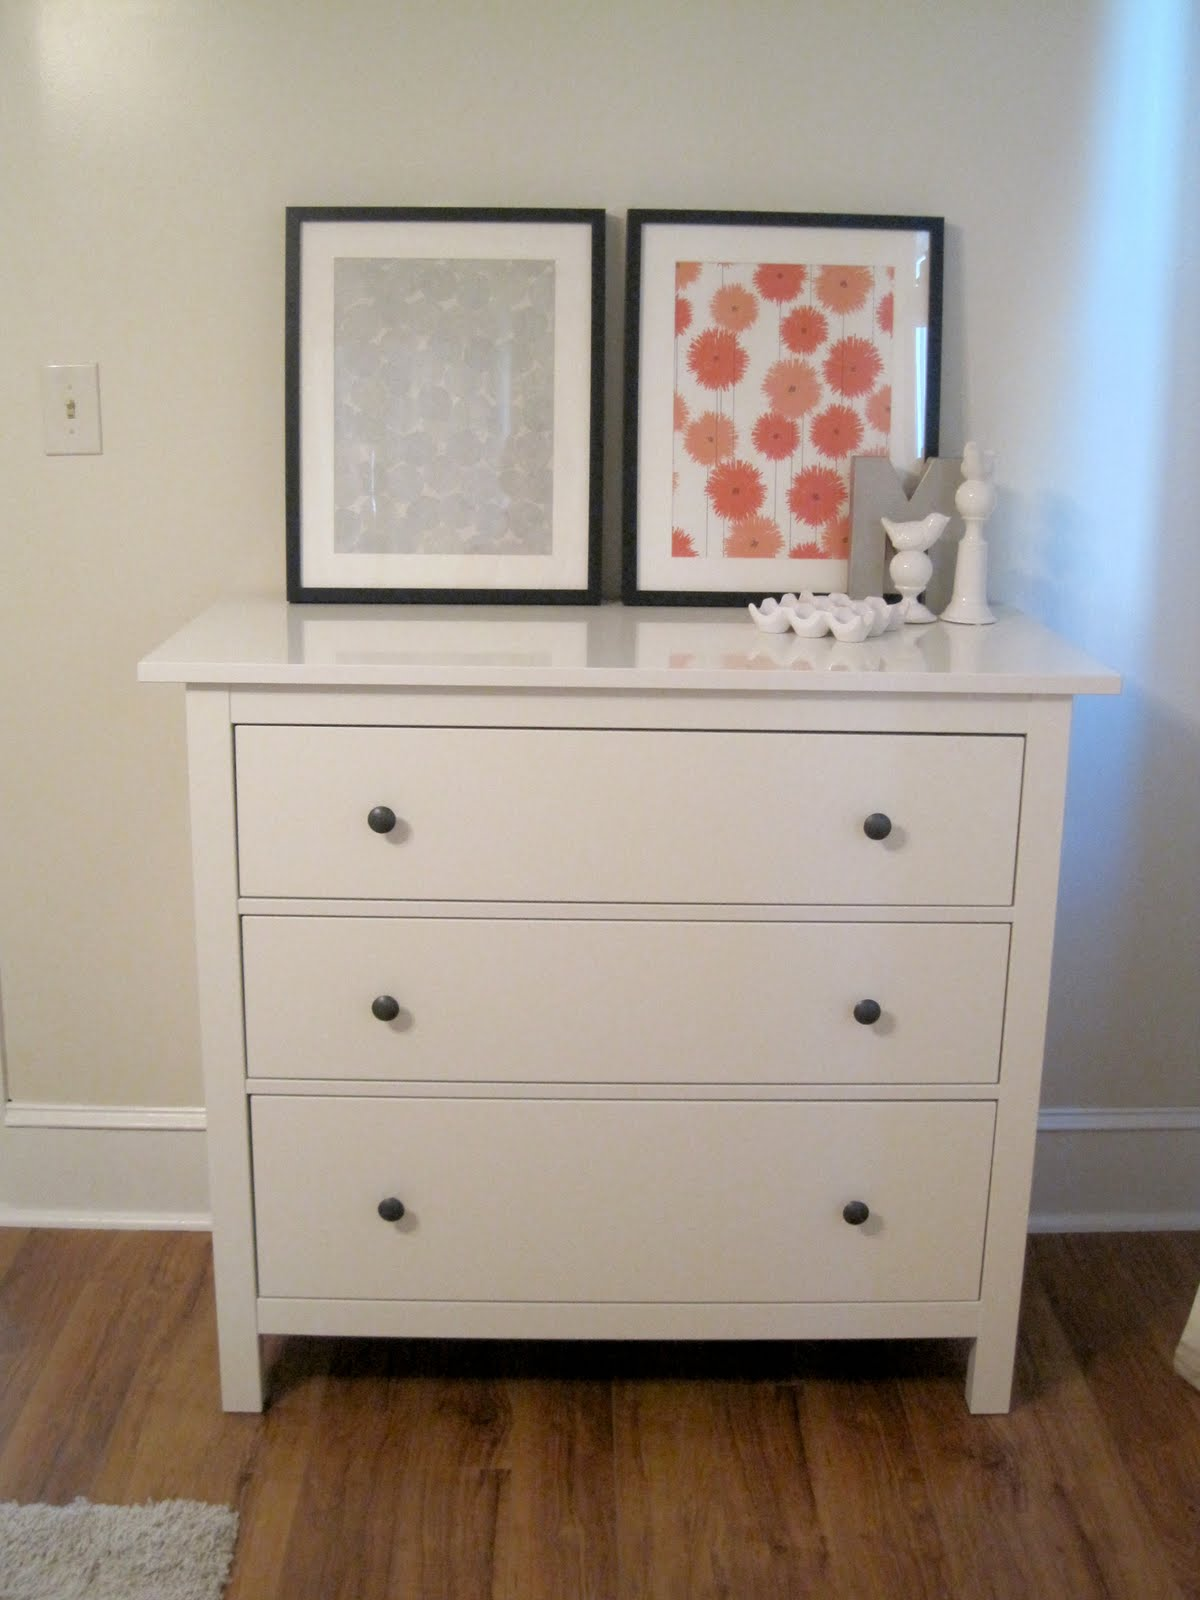 Cora anne designs inexpensive art update for Cardboard drawers ikea